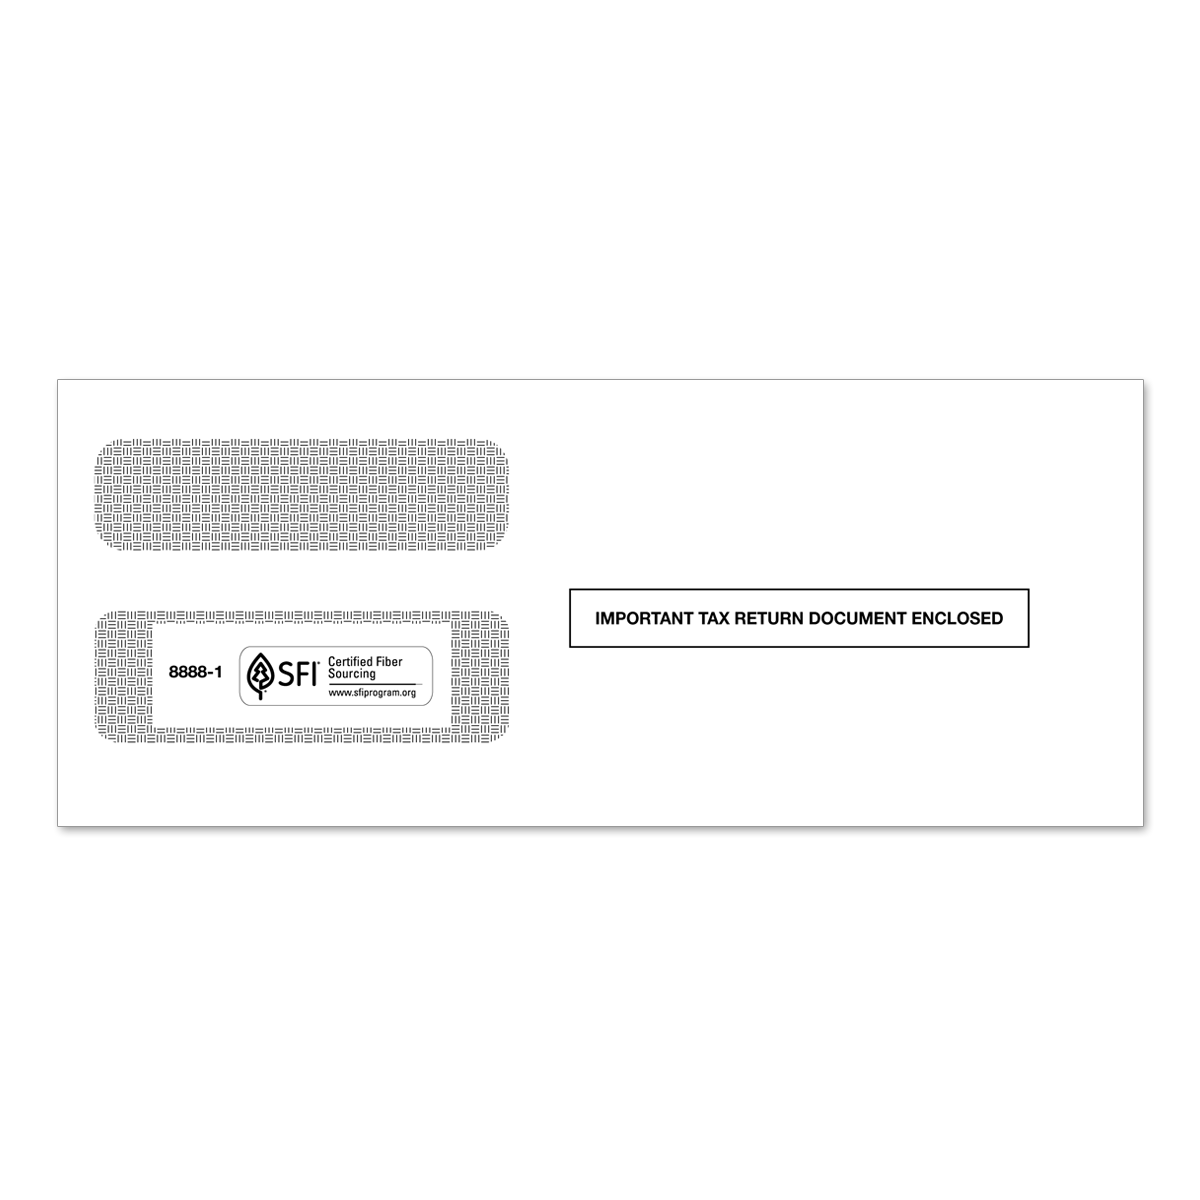 W2 and 1099 tax form envelopes mines press on sale picture for manufacturer 3 up 1099 double window envelope 8888 sciox Image collections